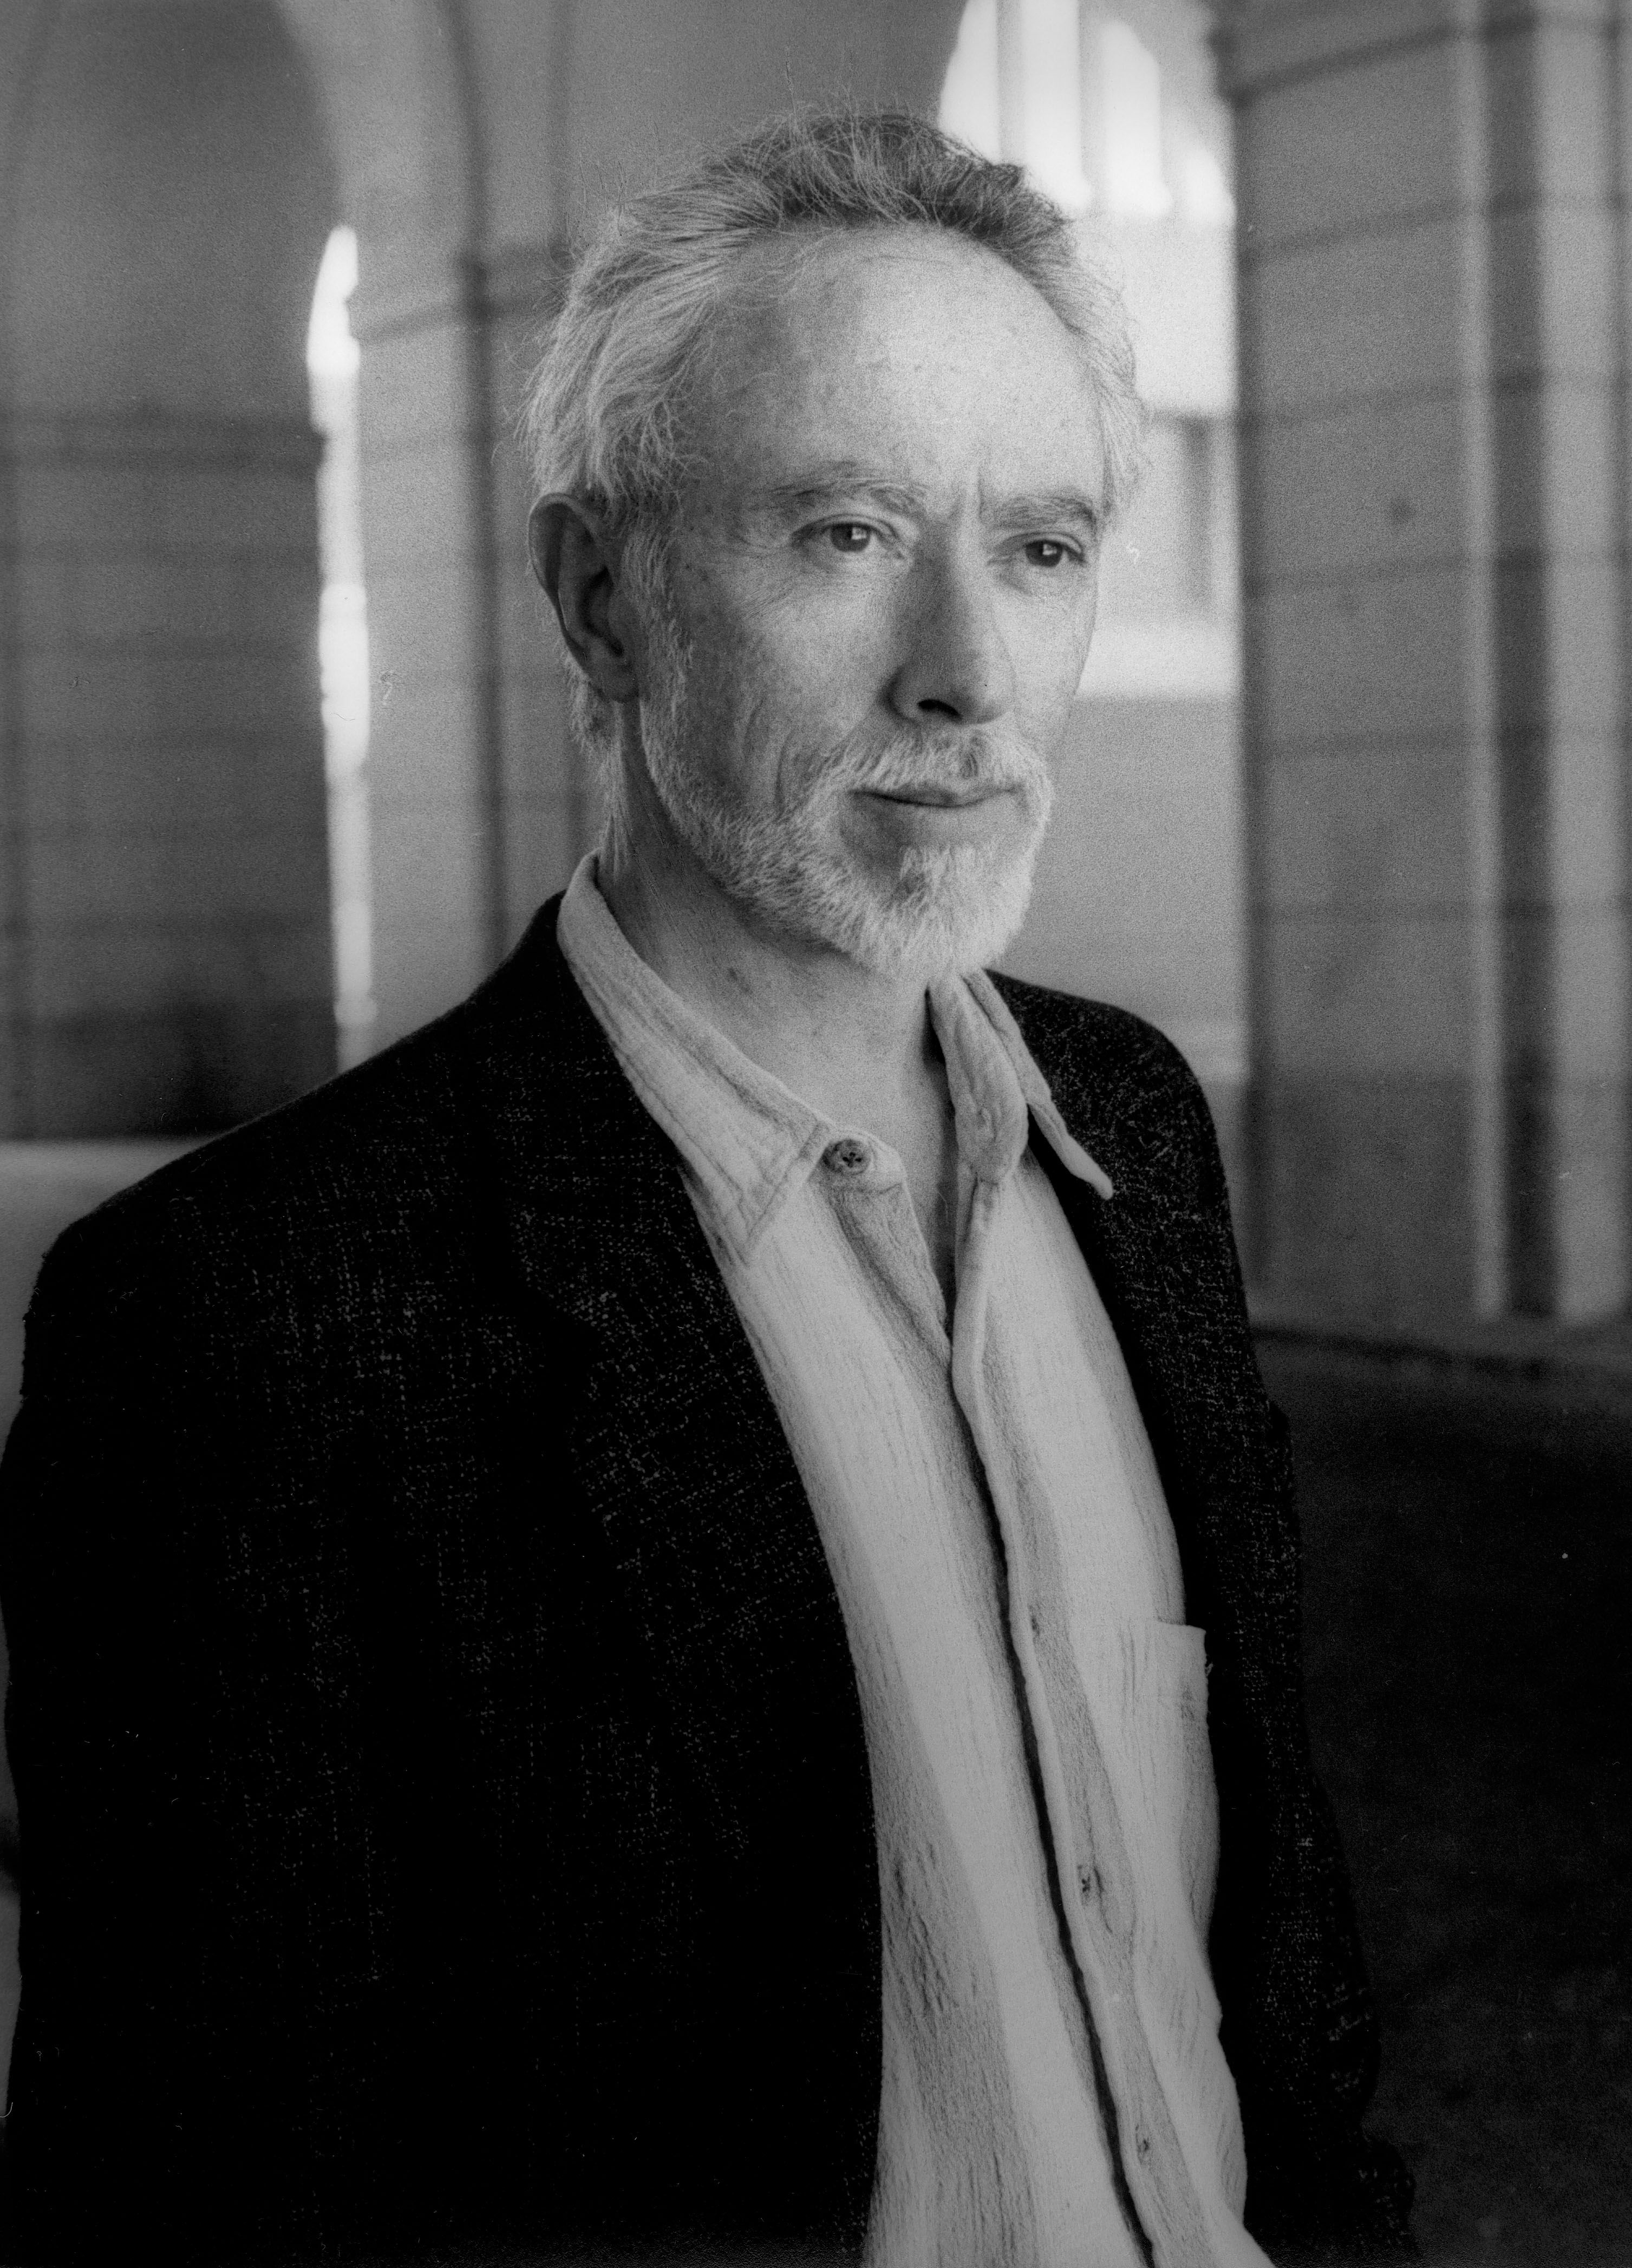 J. M. Coetzee (1940) is a South African novelist, essayist, linguist, translator and recipient of the 2003 Nobel Prize in Literature. He relocated to Australia in 2002 and lives in Adelaide. He became an Australian citizen in 2006.